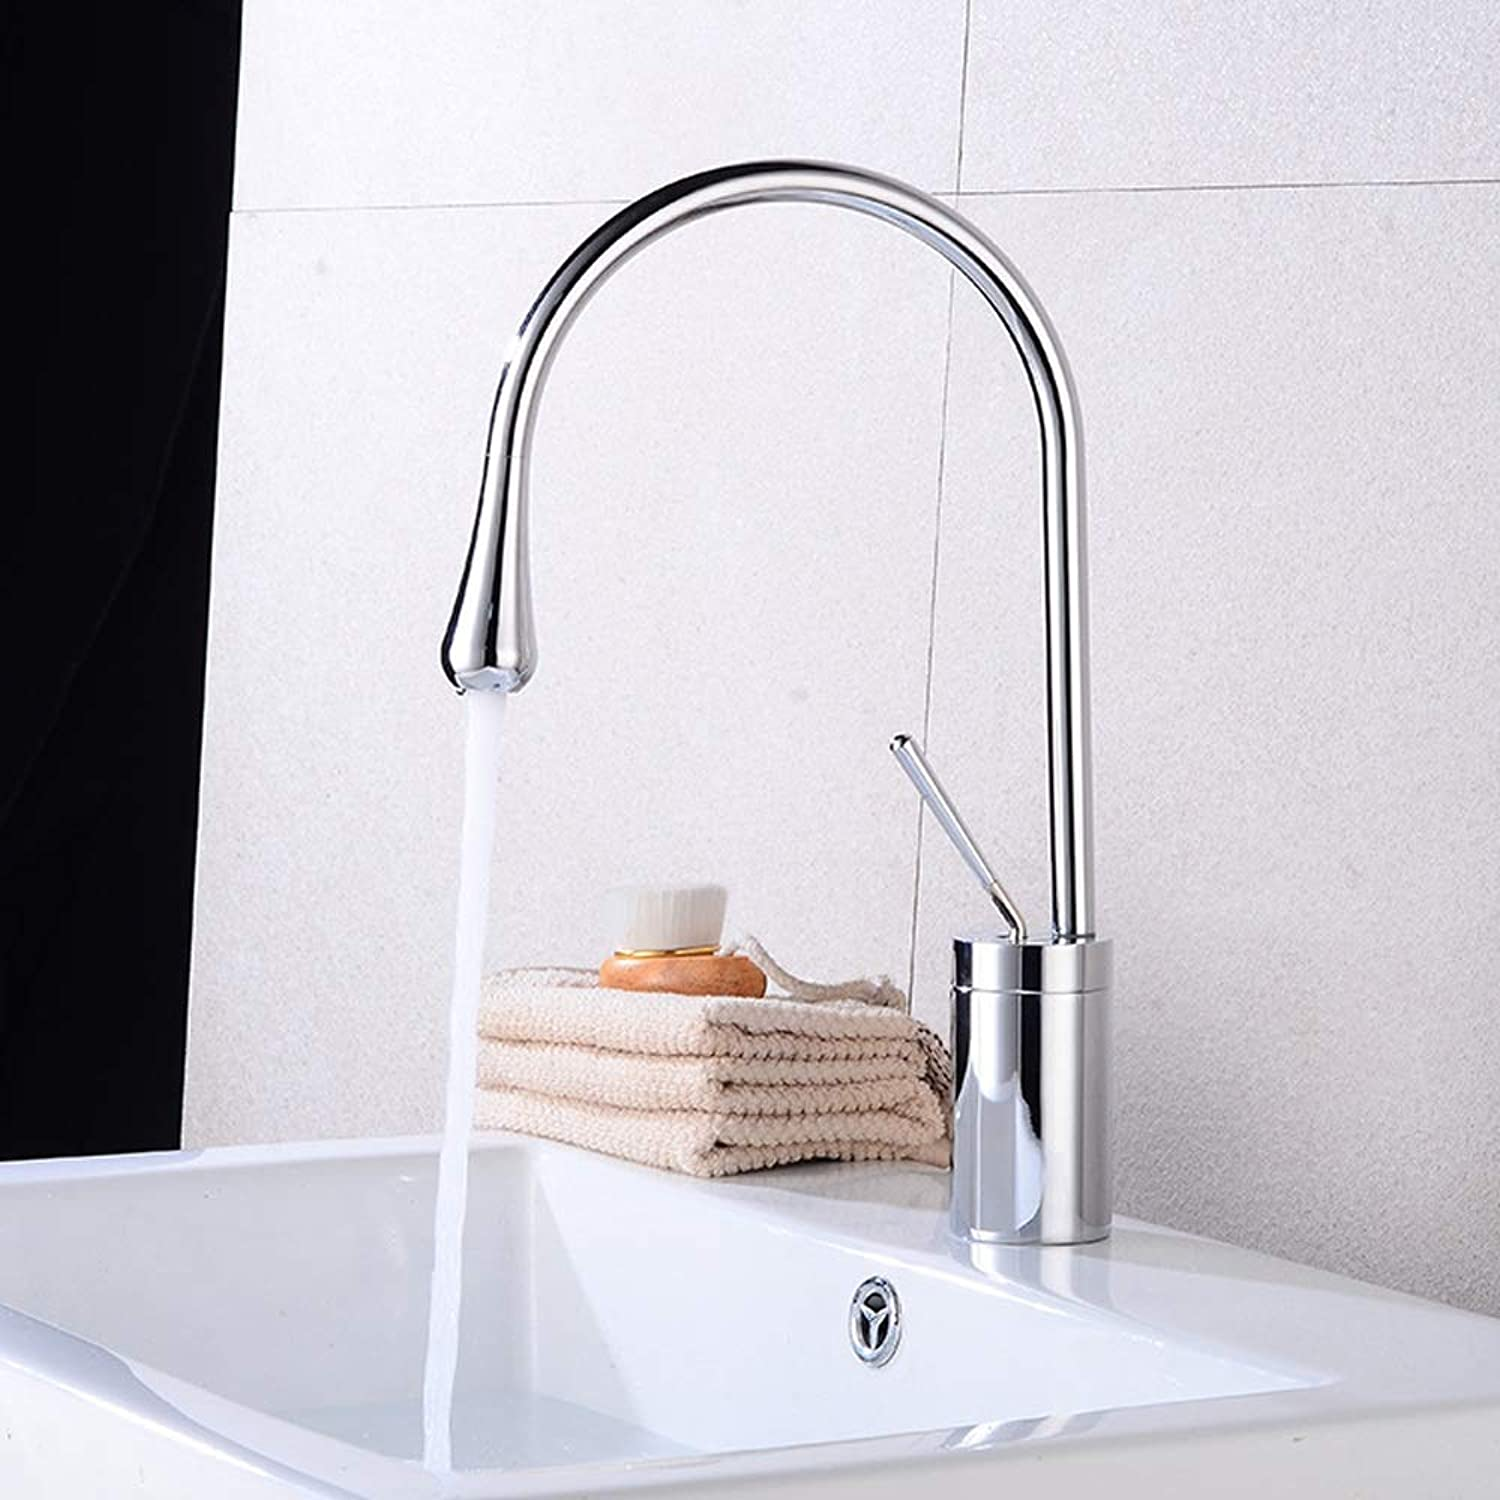 AXWT Nordic Simple Washbasin Faucet Hot And Cold Sink Faucet Heightening Creative Kitchen Water-tap European Style Basin Faucet Above Counter Basin Cold Heat Taps (Size   38cm)